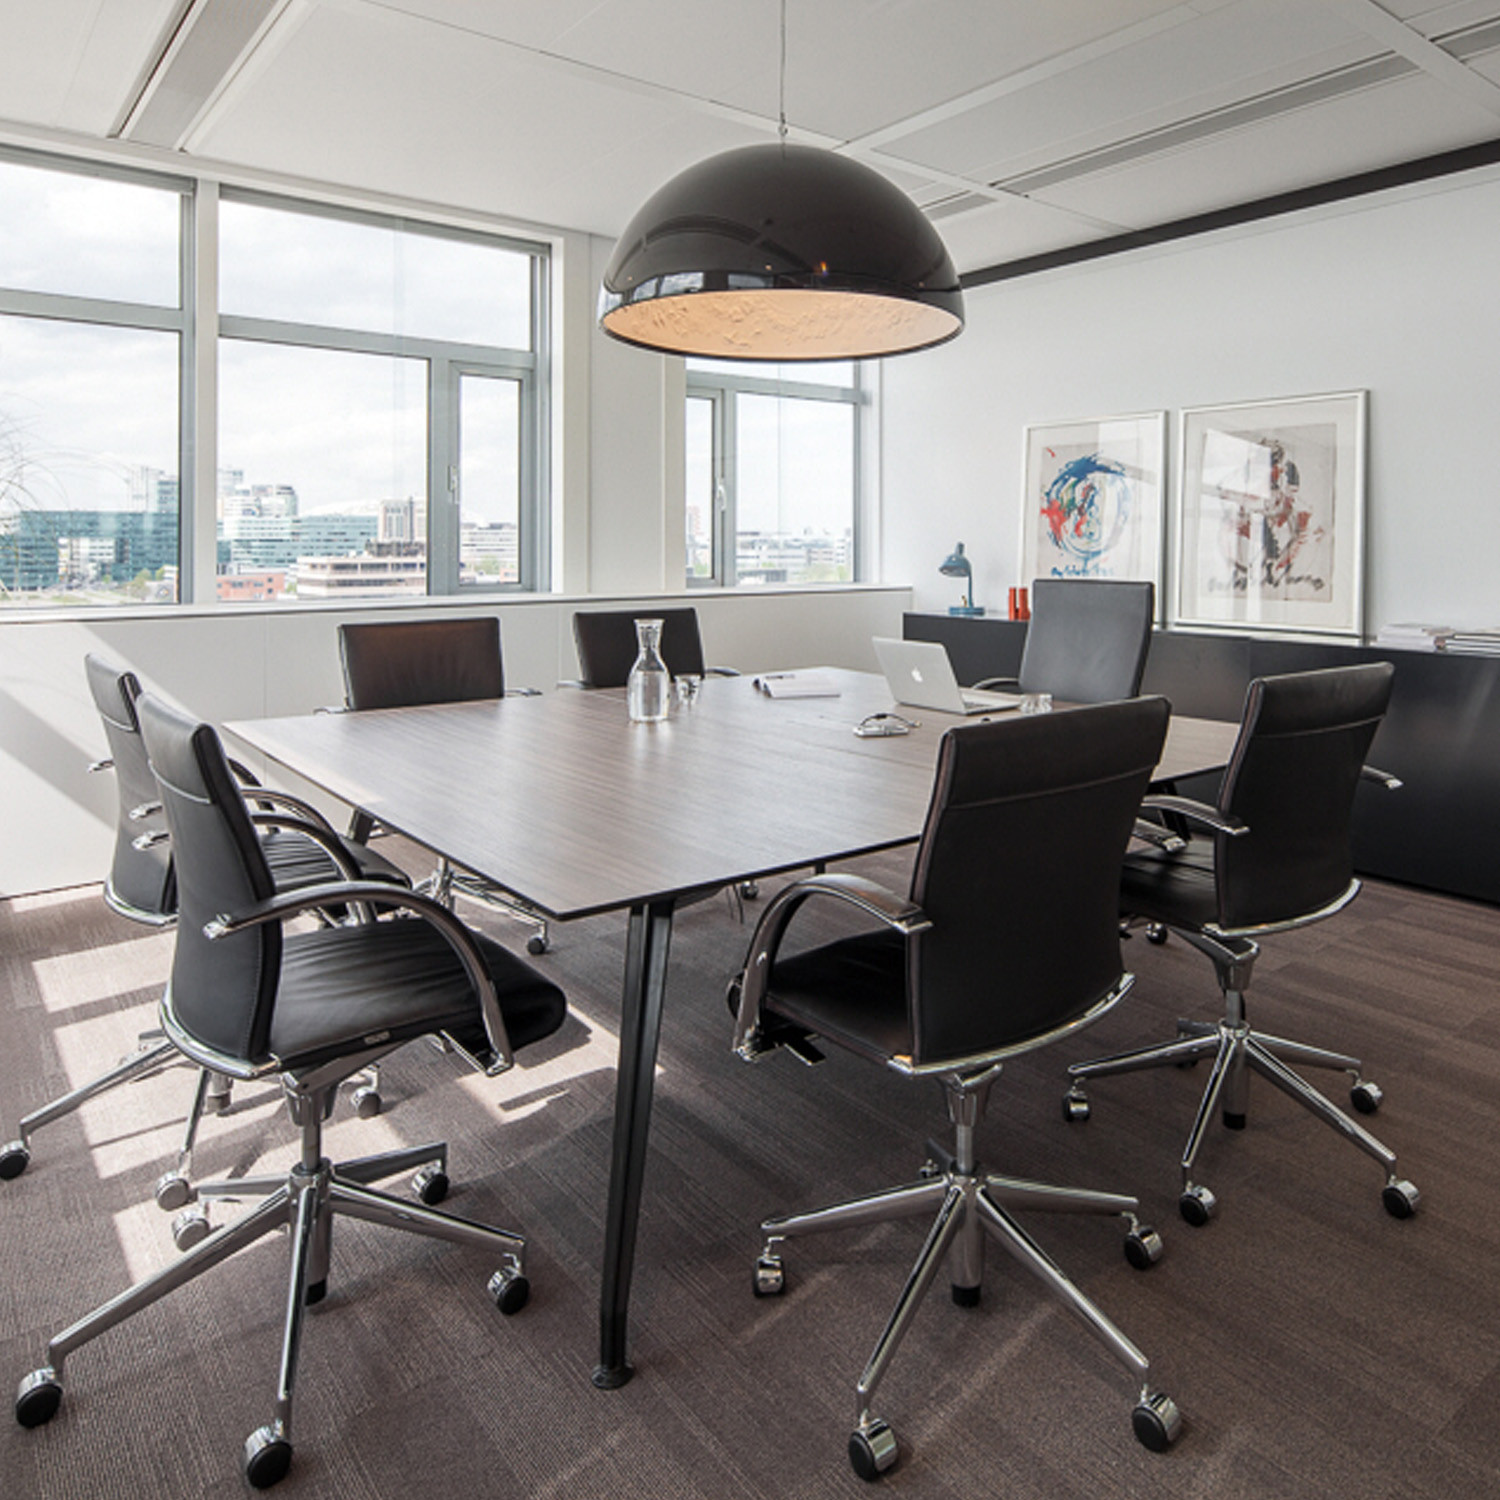 Ahrend 1200 Edition Meeting Table